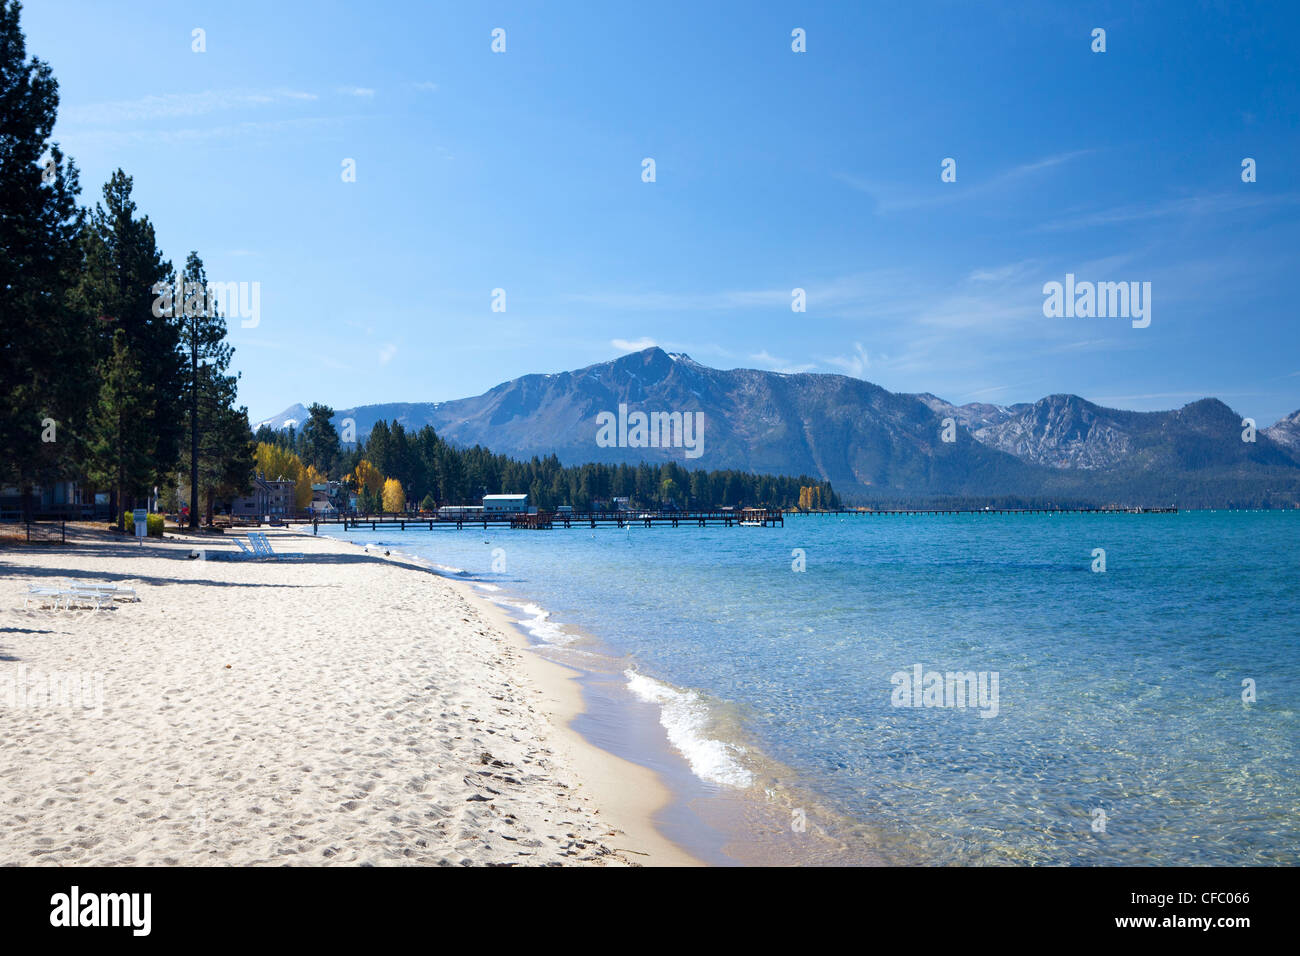 USA, United States, America, California, Lake Tahoe, lake, shore, attraction, beach, blue, destination, famous, - Stock Image